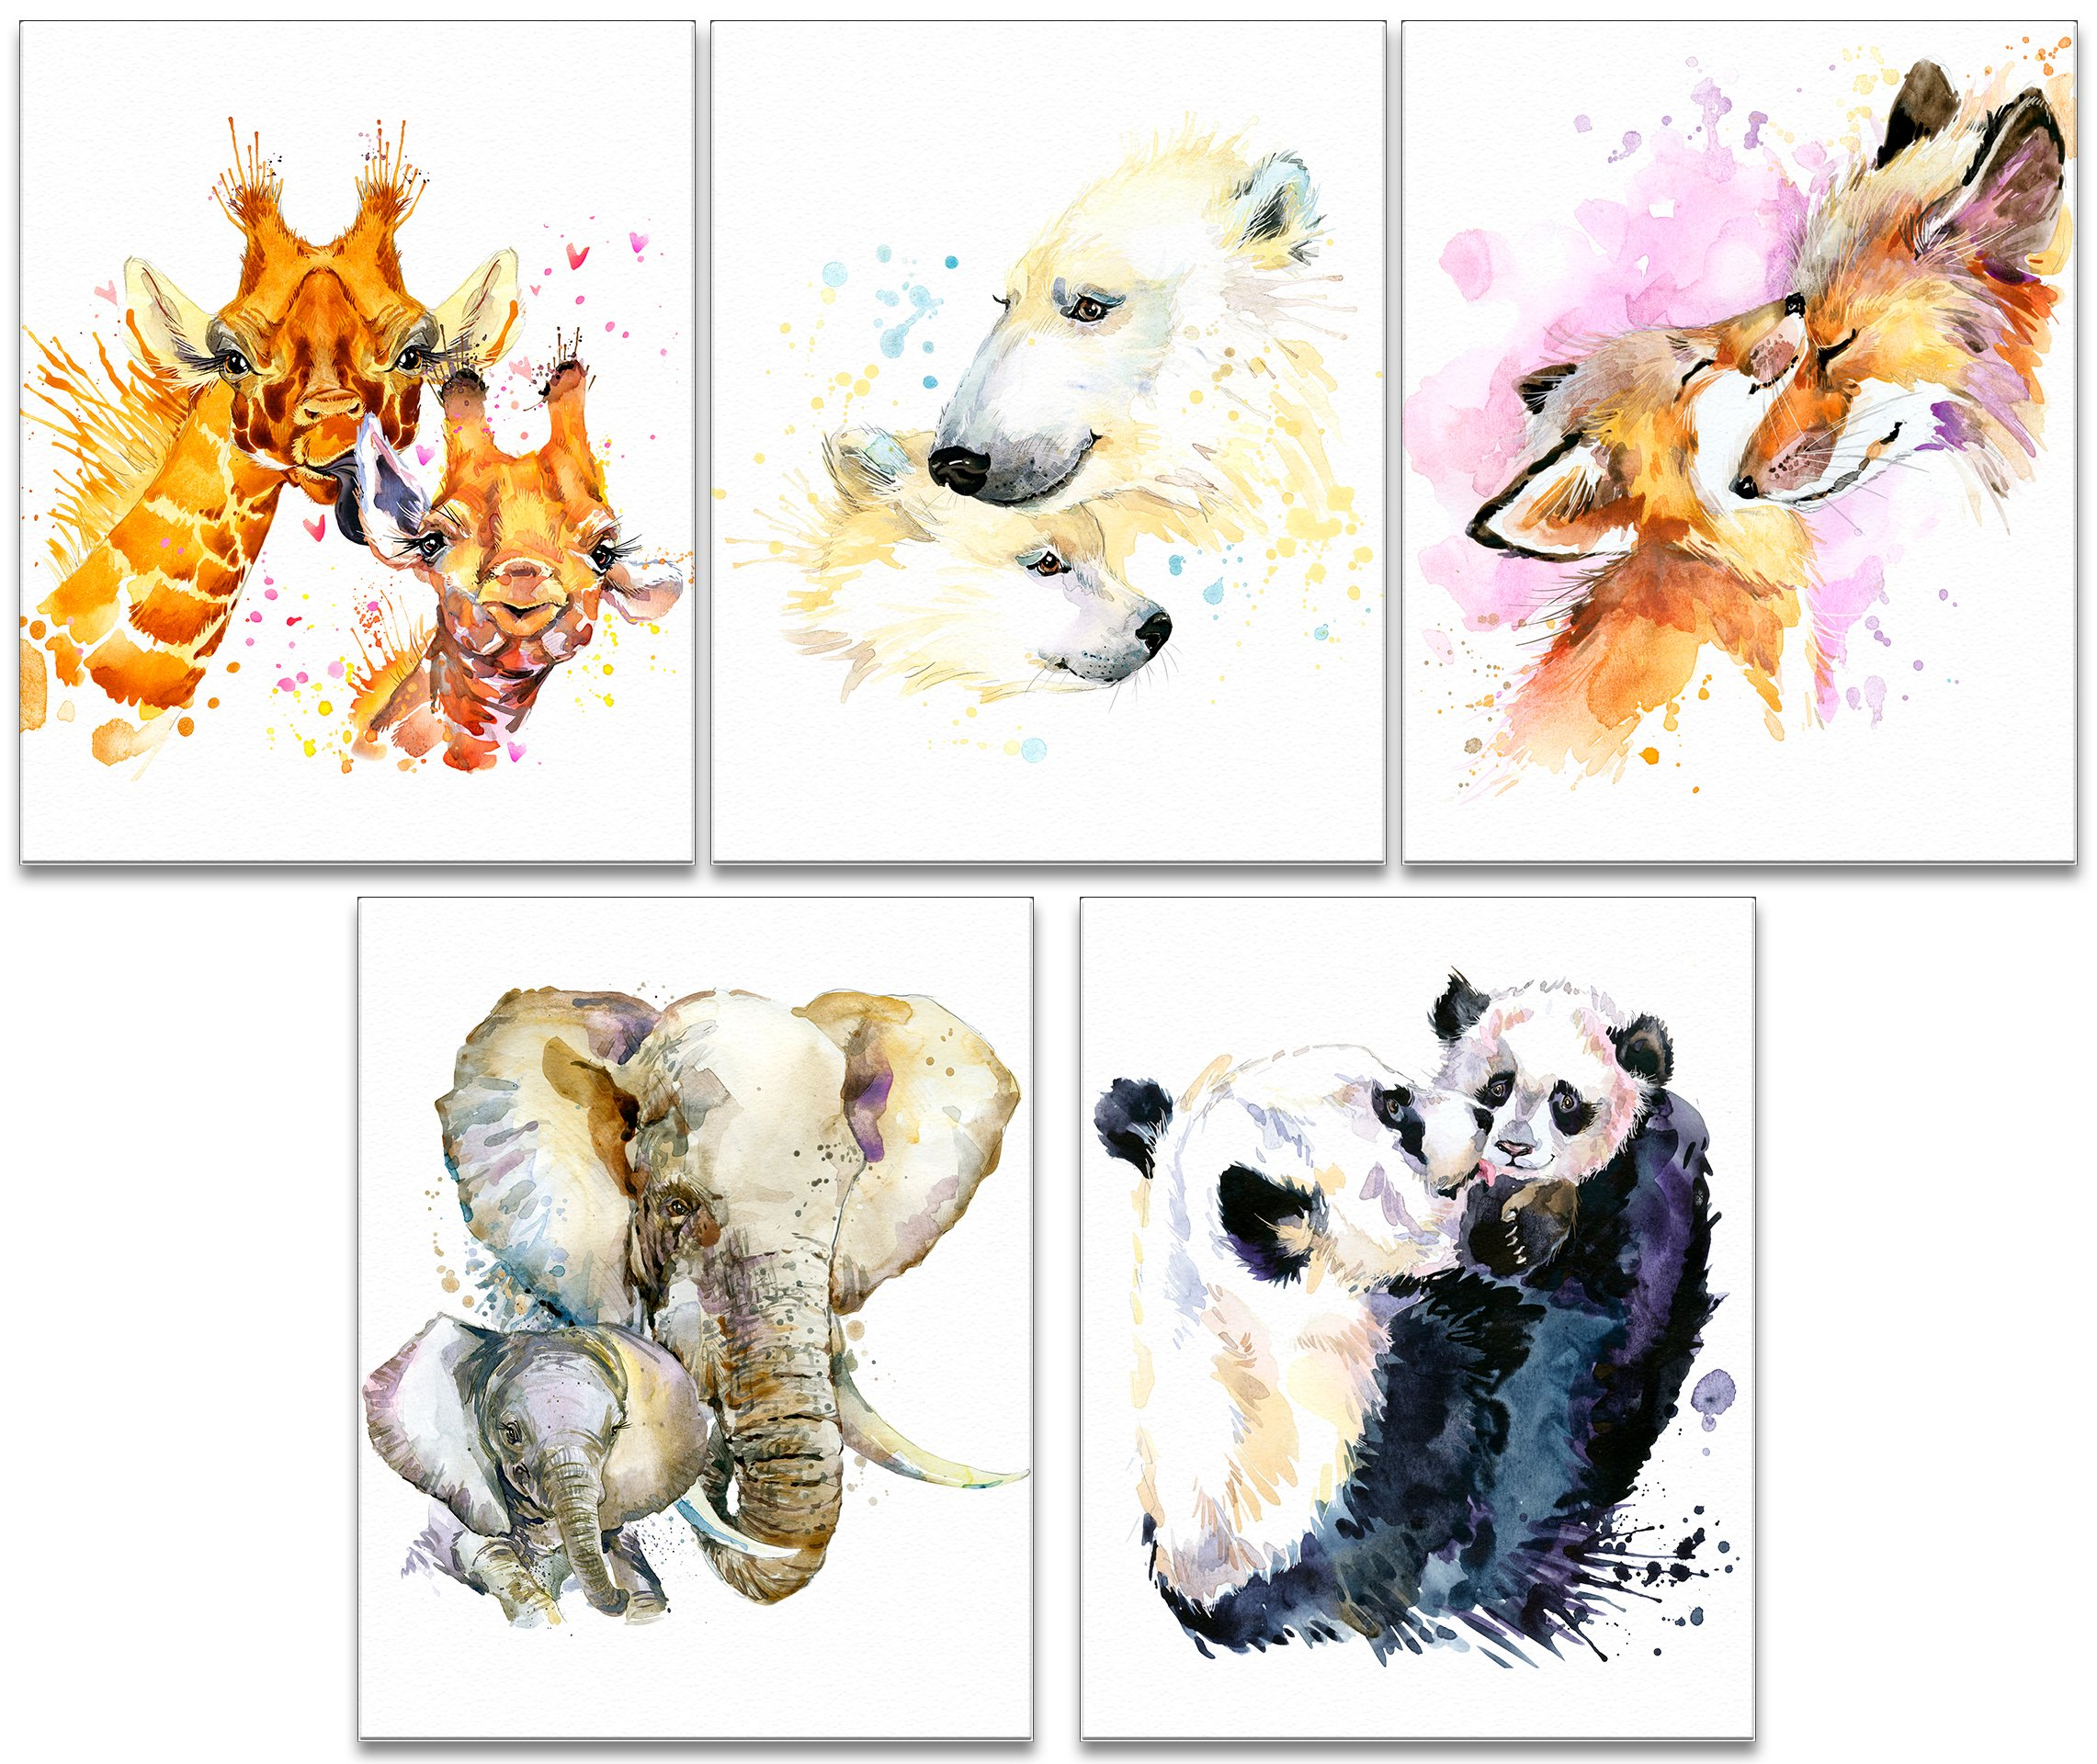 7Dots Art. Mom and baby. Watercolor Art Print, poster 8''x10'' on Fine Art thick Watercolor paper for childrens kids room, bedroom, bathroom. Wall art decor with Animals for boys, girls. (z6 Set of 5)